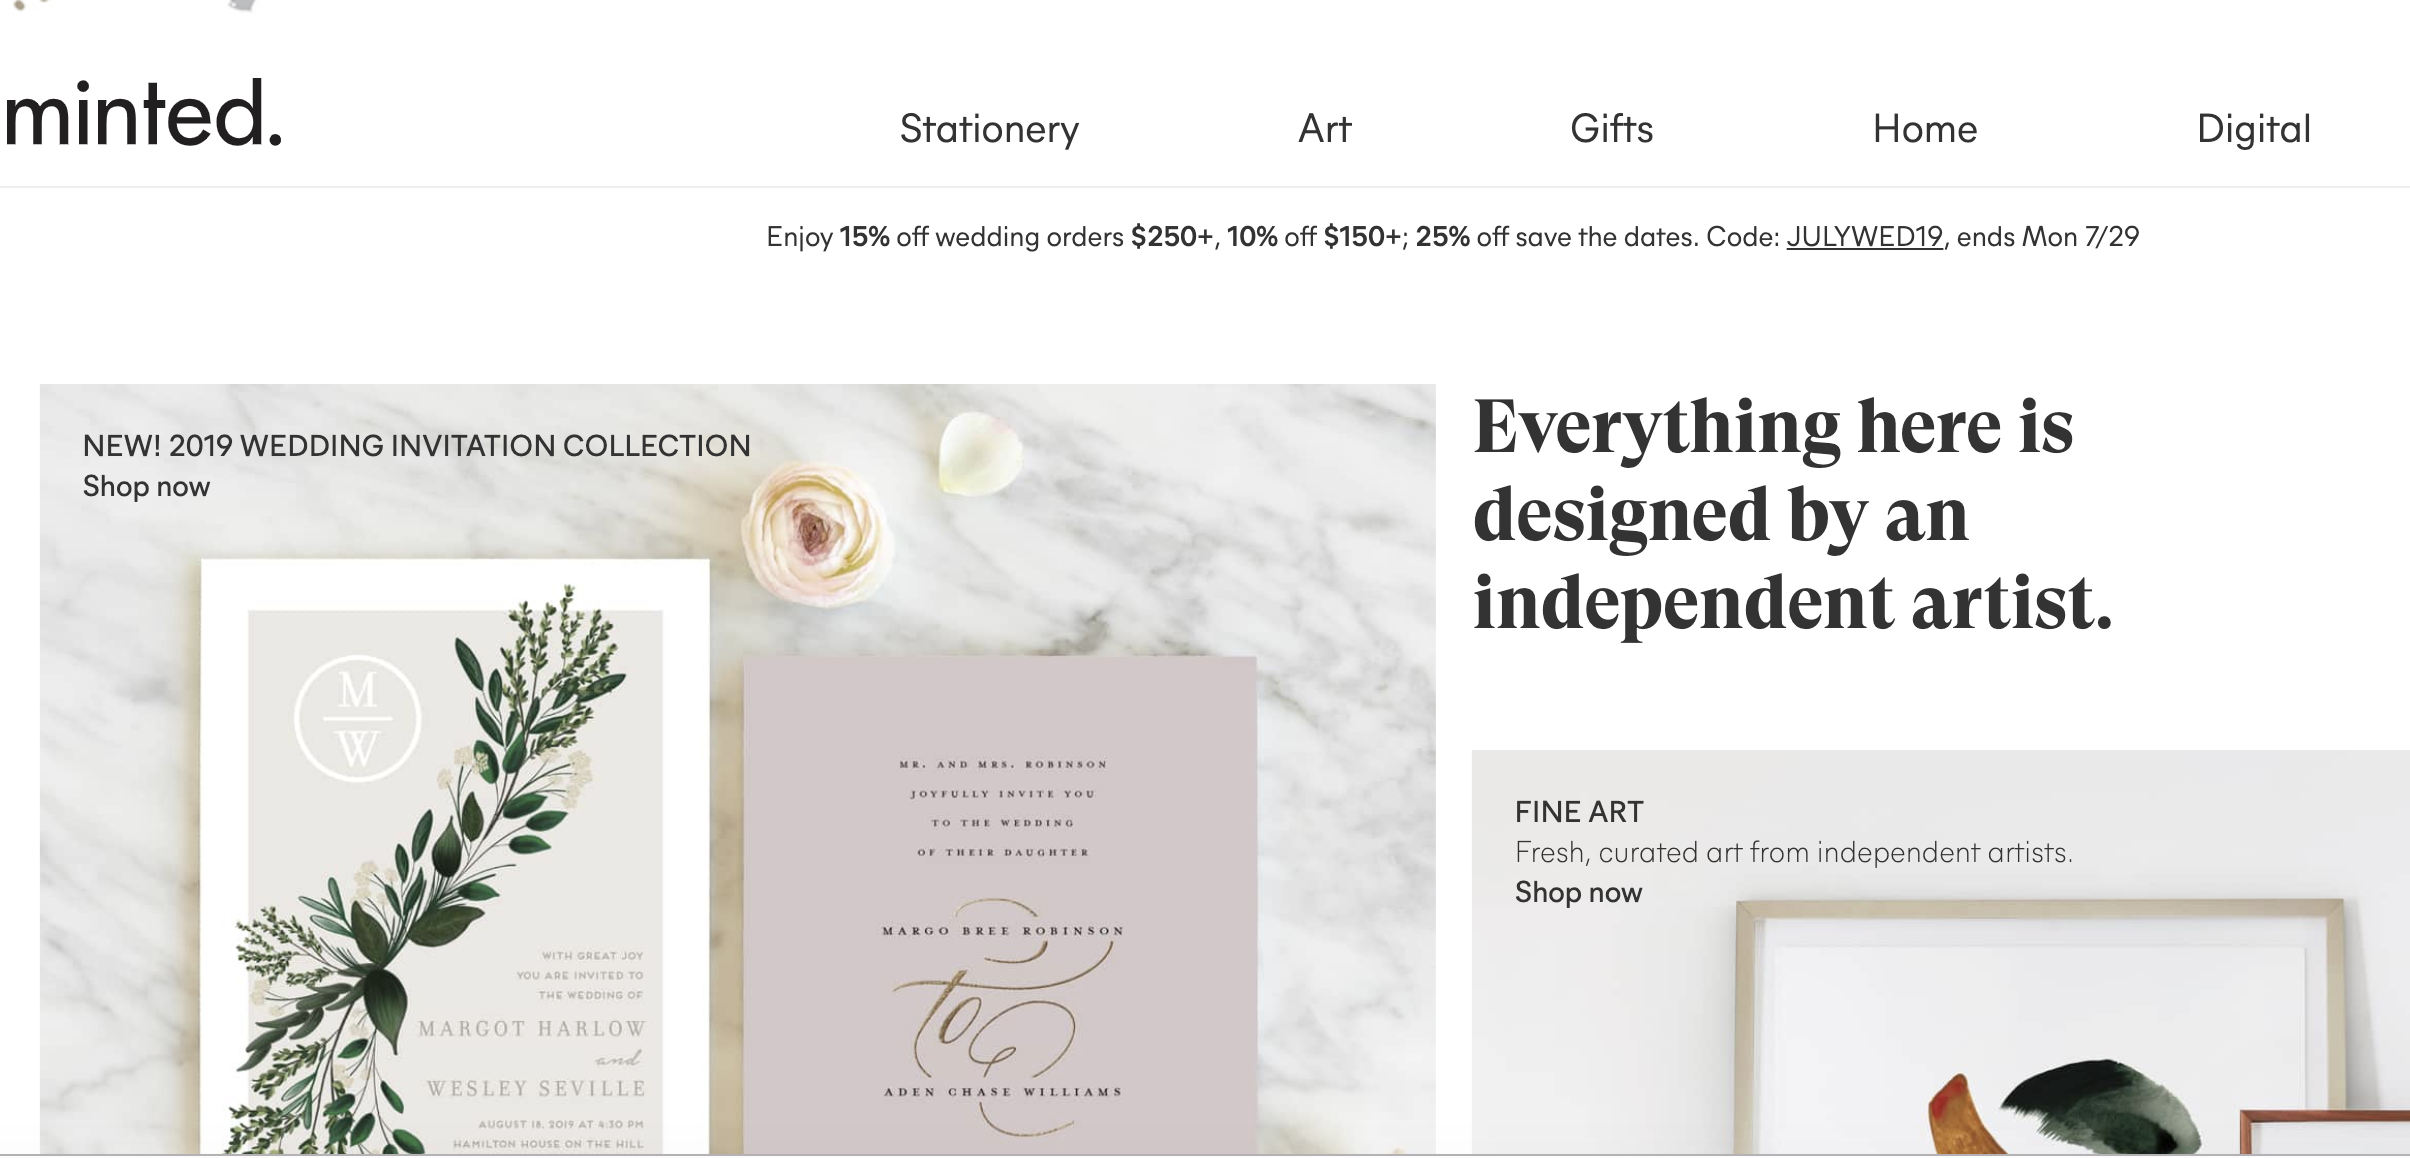 Minted is expanding but has no plans for an IPO